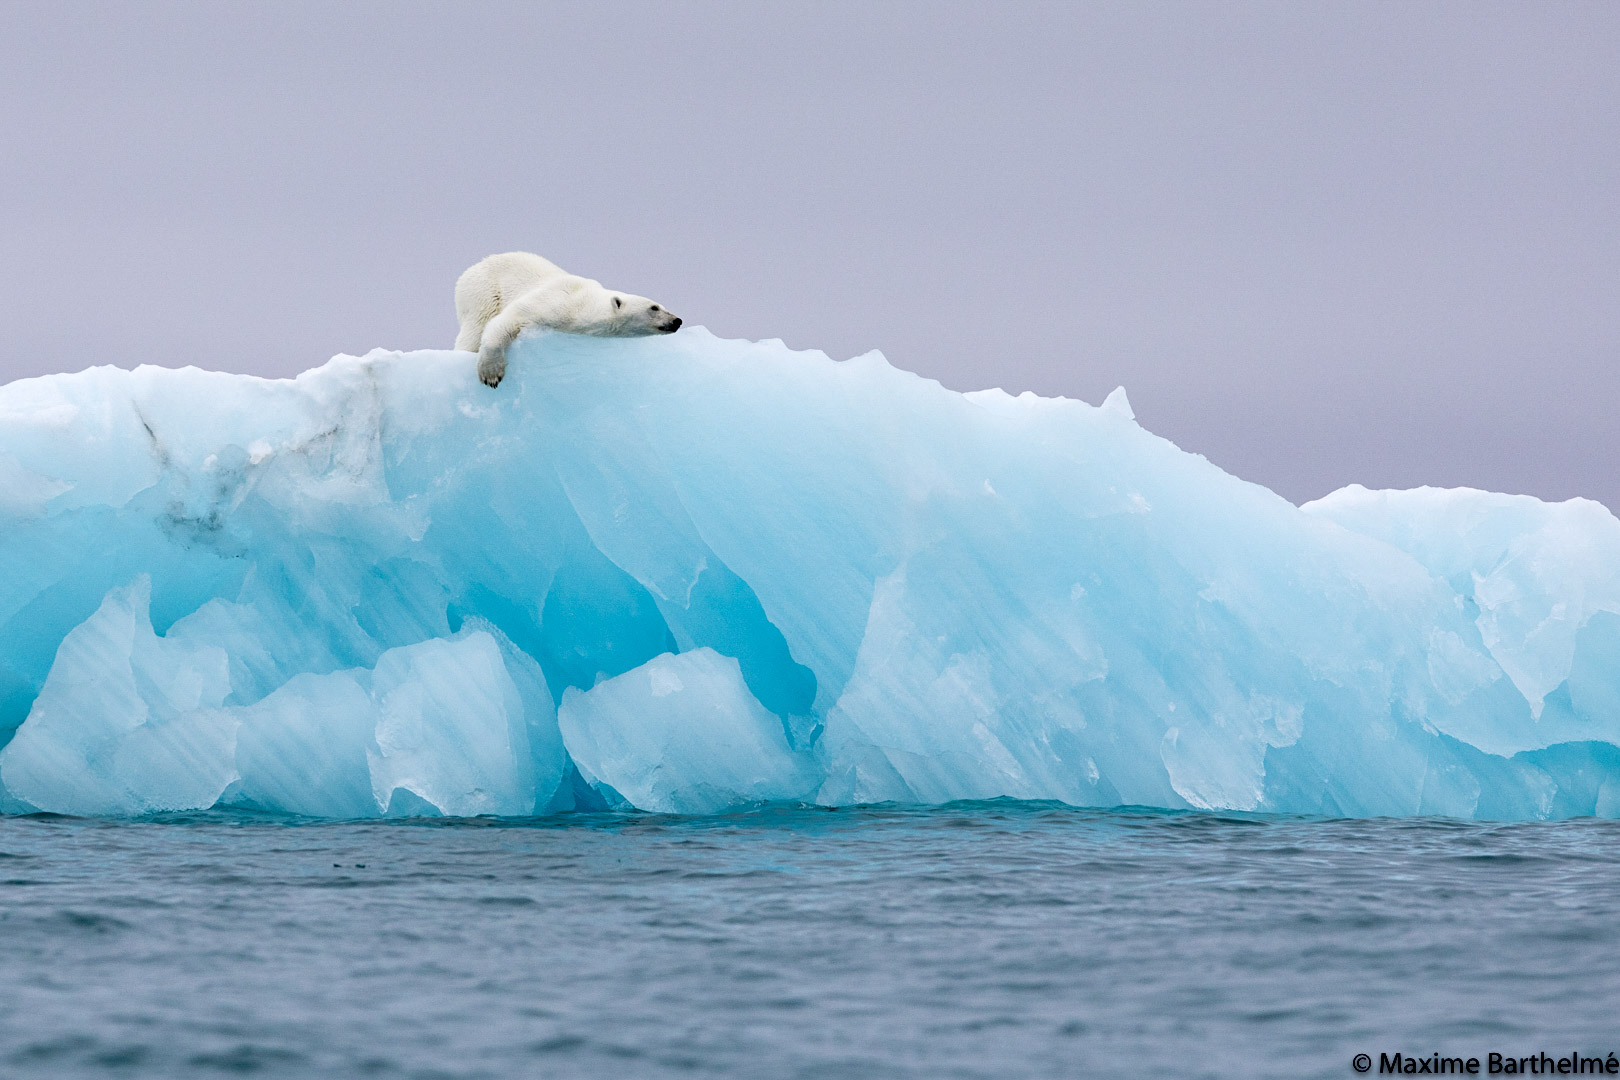 Ours polaire iceberg